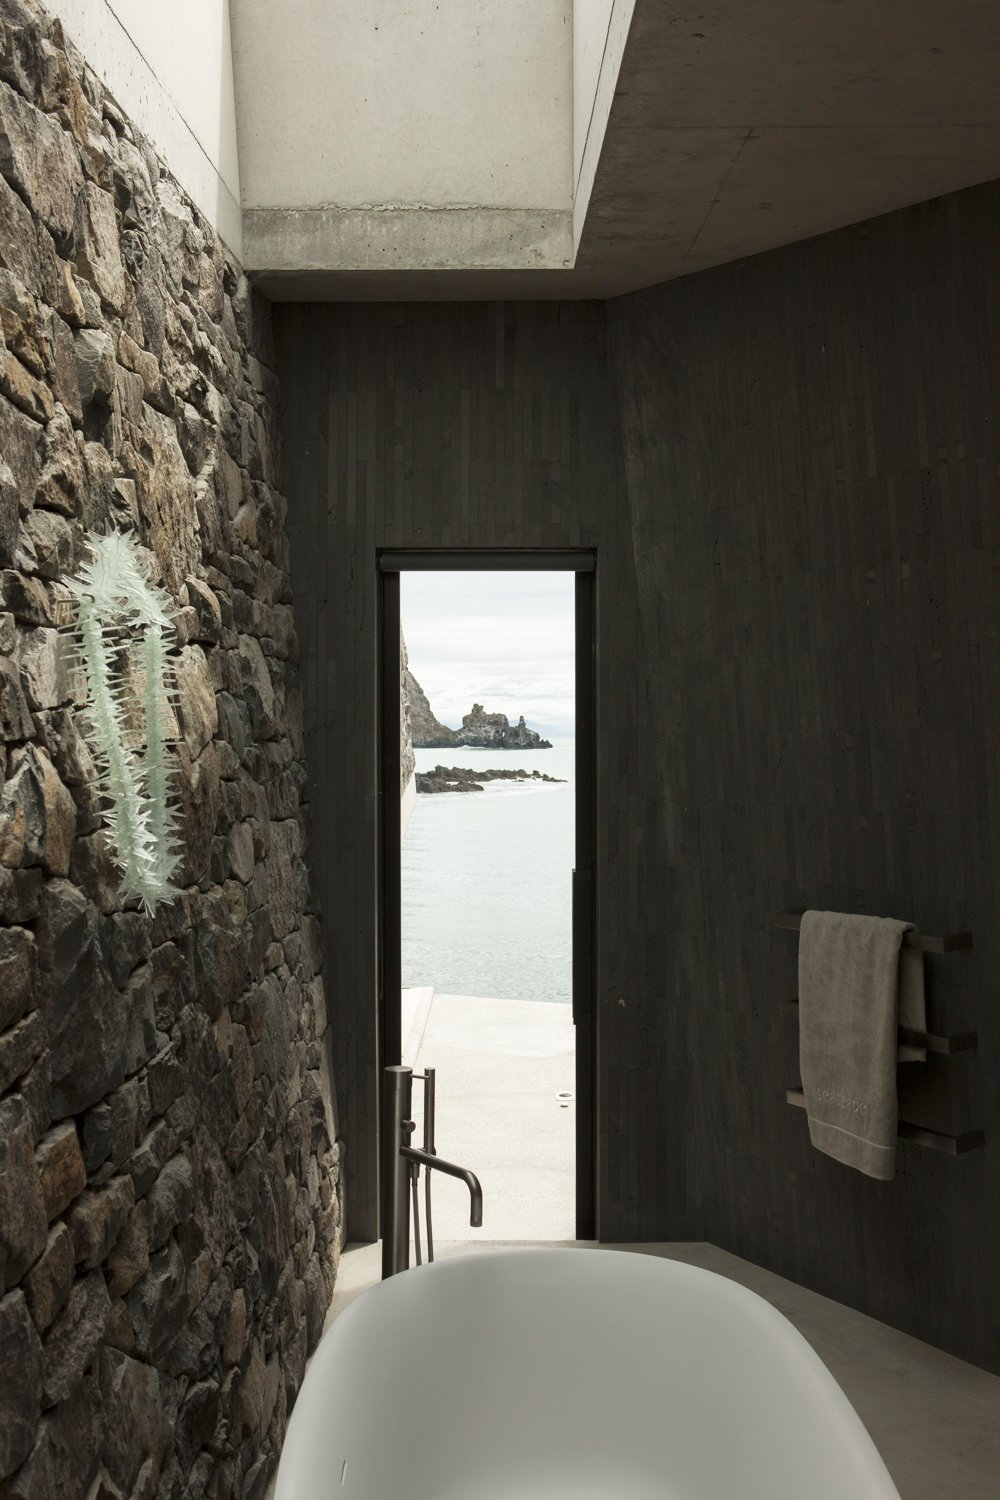 Bath Room, Freestanding Tub, and Soaking Tub  Photo 20 of 40 in 40 Modern Bathtubs That Soak In the View from Stay at a Stone-and-Glass Retreat in a Remote New Zealand Bay